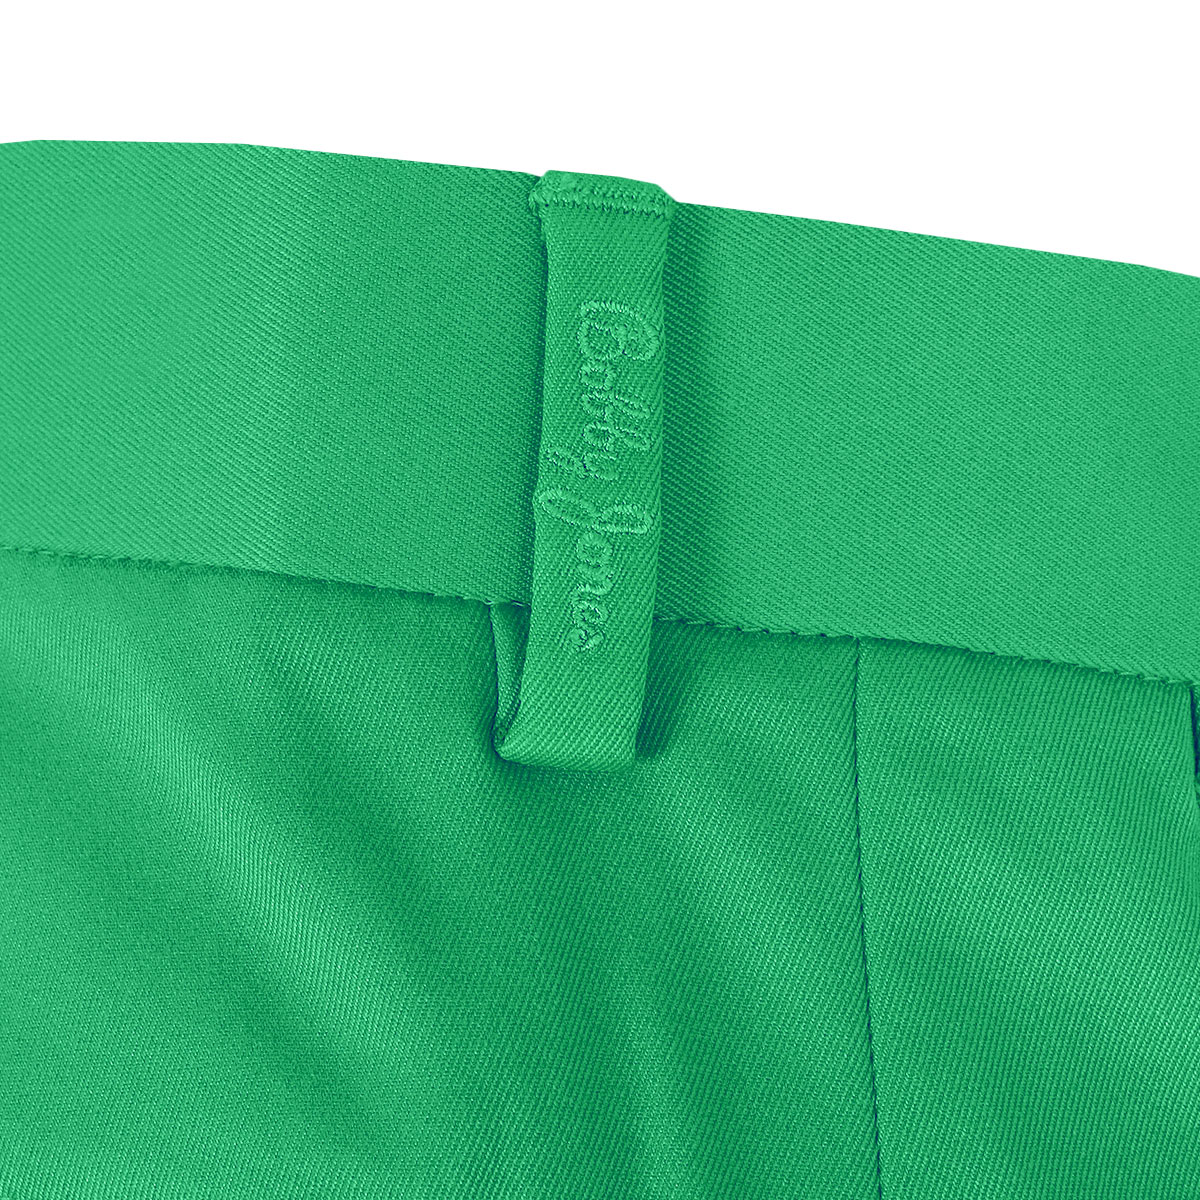 Bobby-Jones-Mens-XH2O-Tech-Stretch-Breathable-Golf-Shorts-65-OFF-RRP thumbnail 18